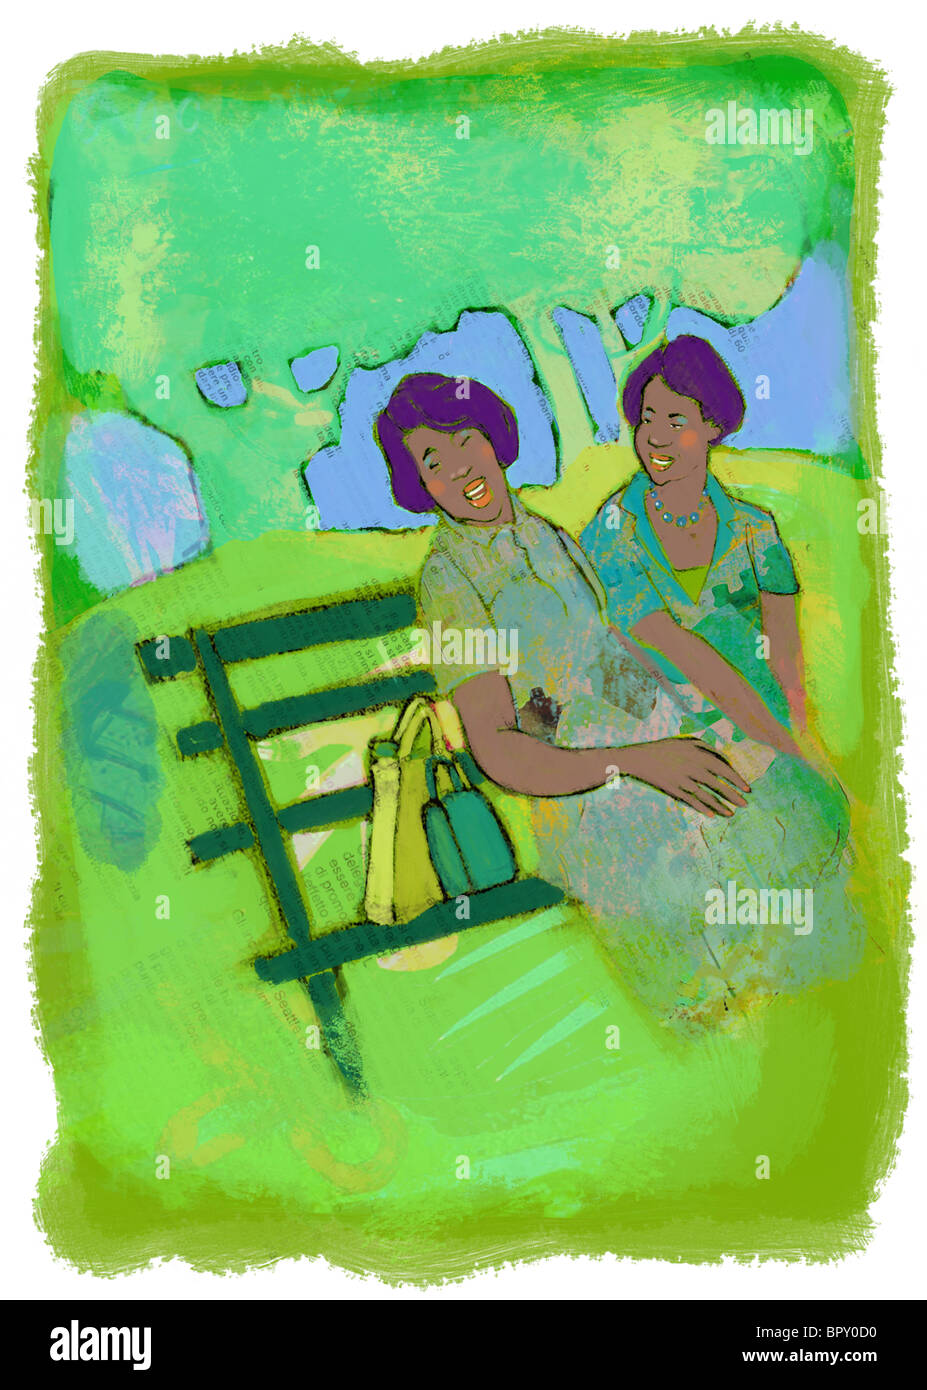 Two women sitting and chatting on a park bench - Stock Image